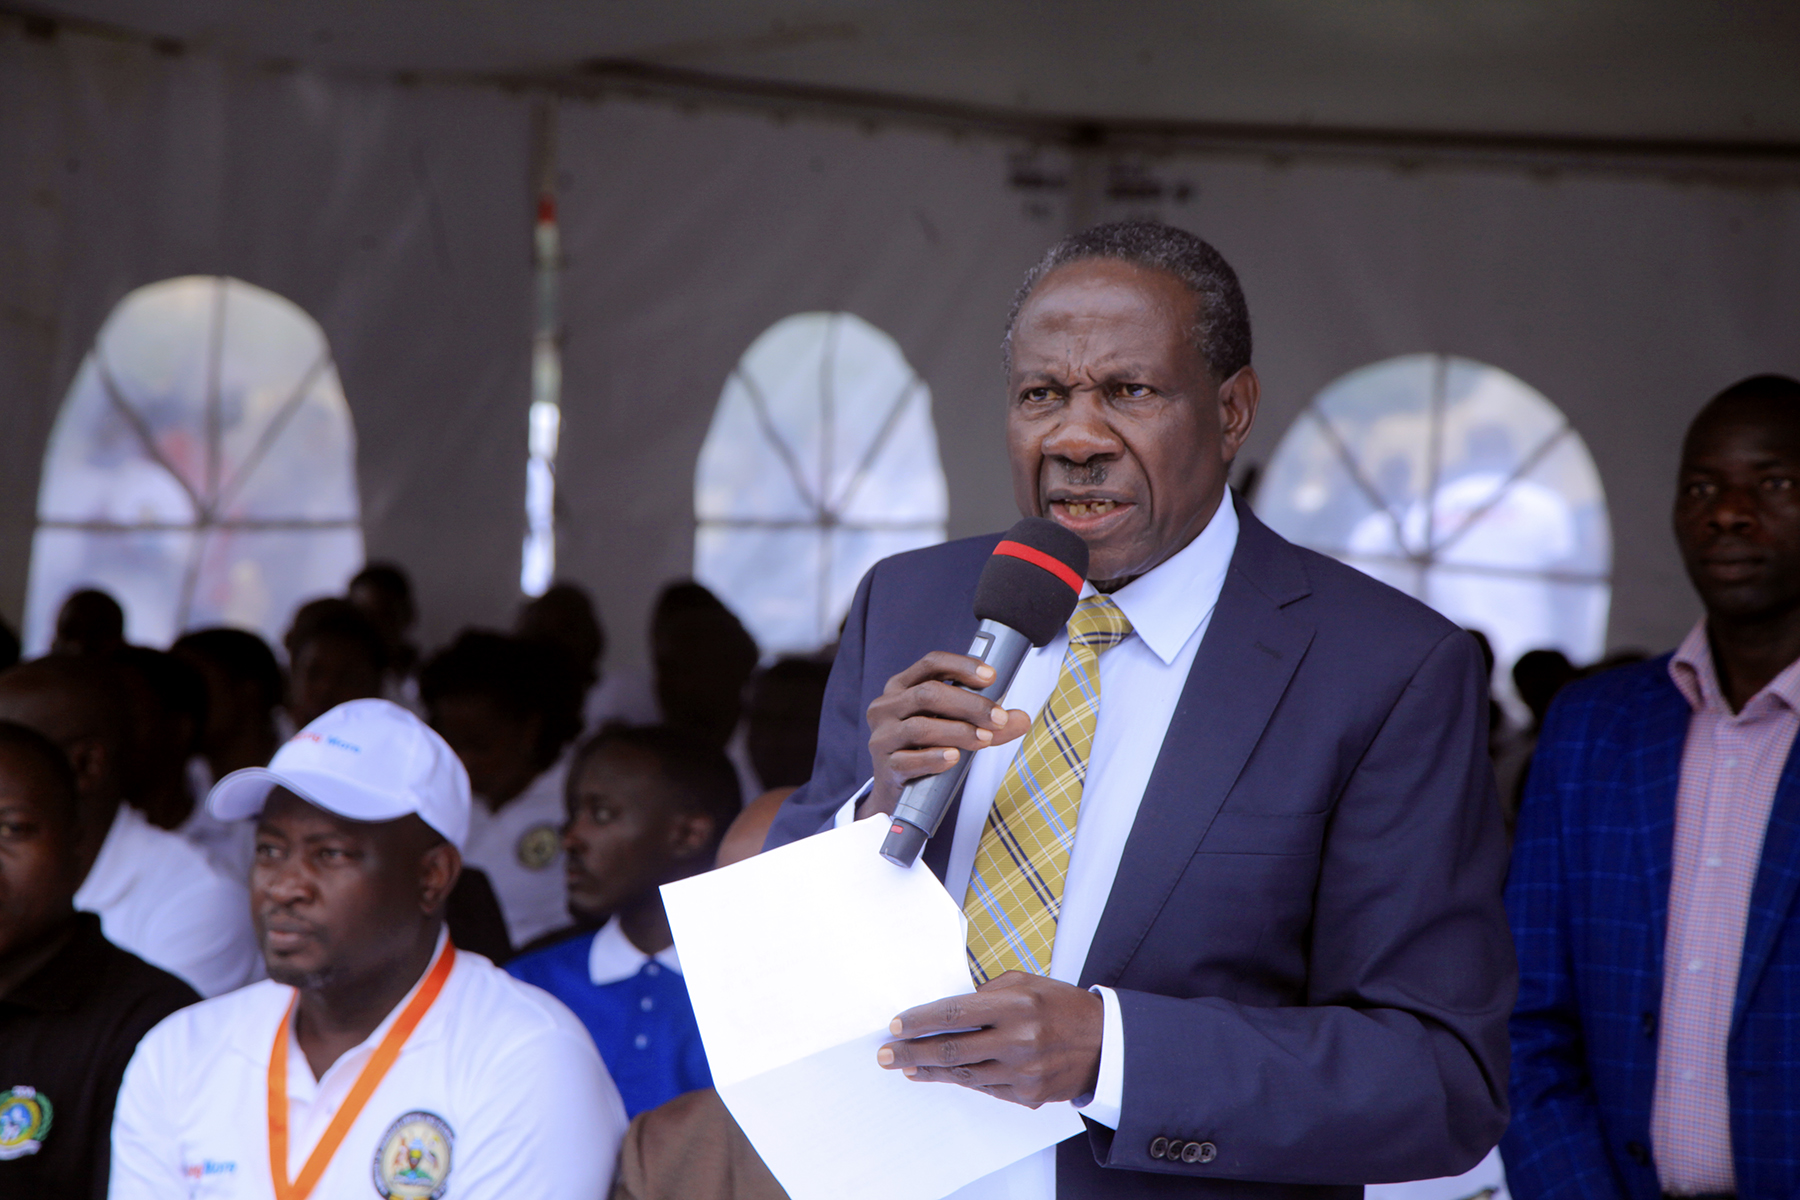 Hon. Matia Kasaijja Minister for Finance, Planning and Economic Development (MOFPED) opens the Budget Exhibition month at Kololo Independence rounds